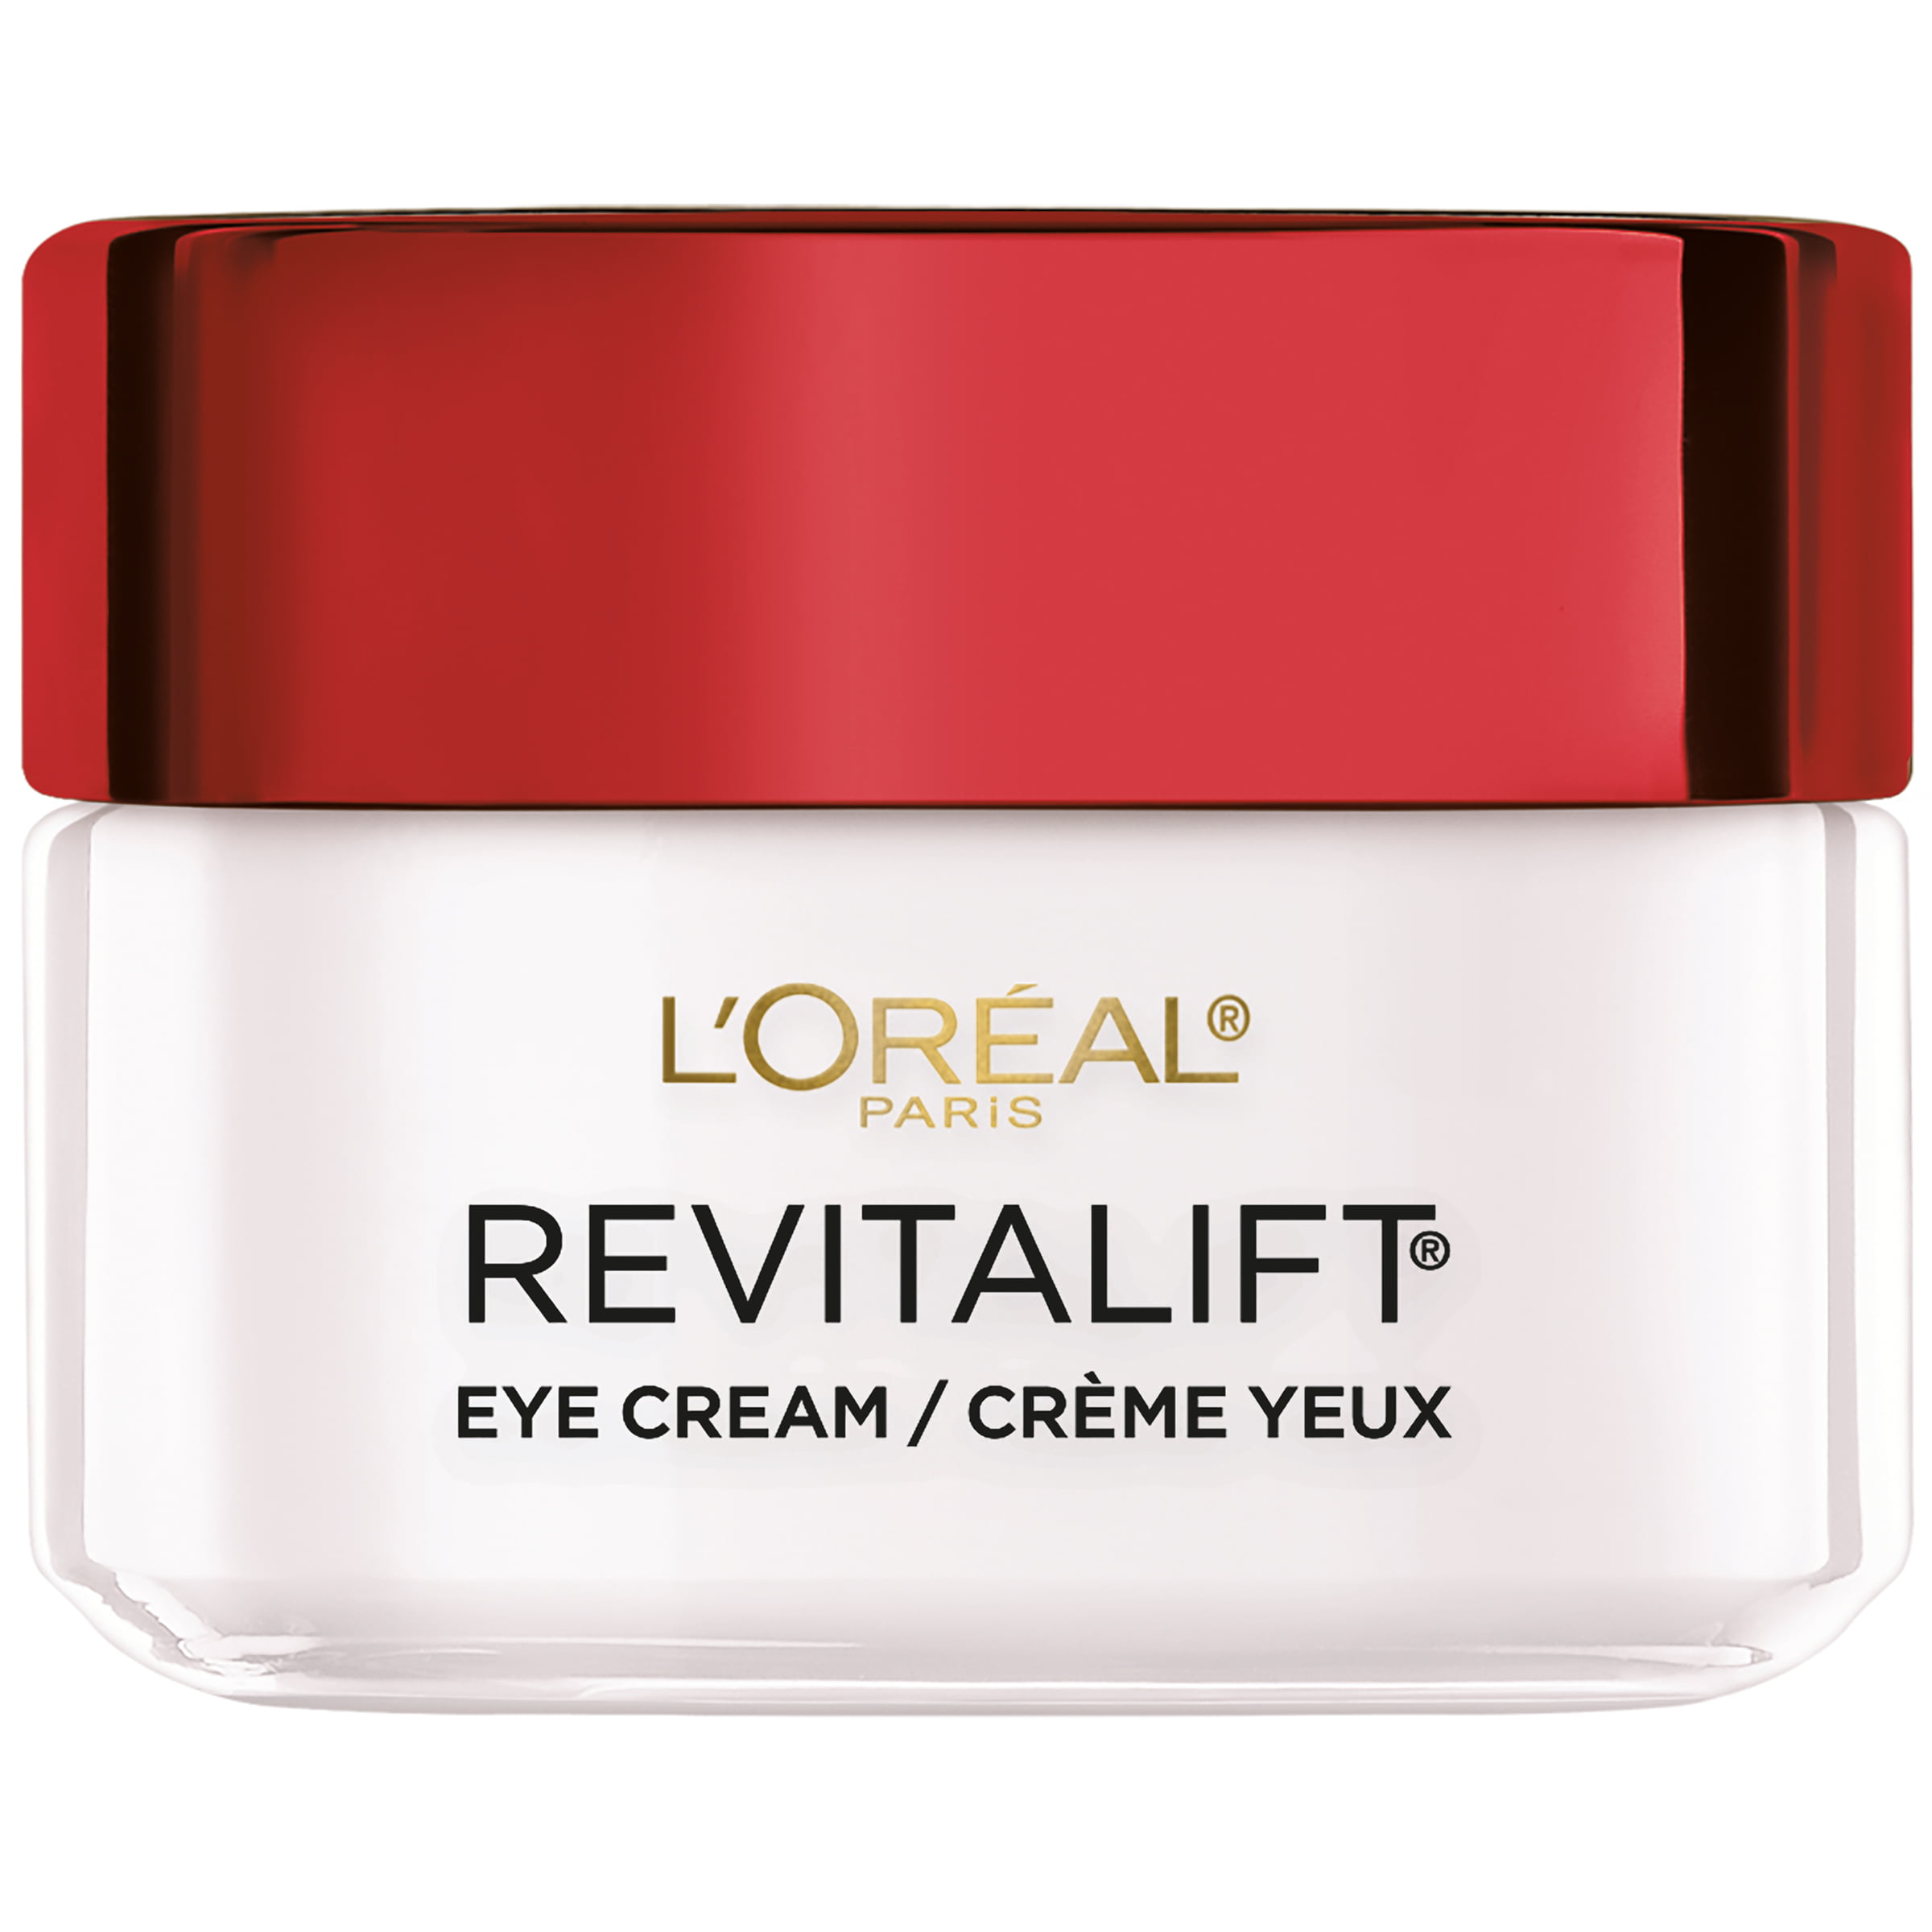 Cerave Eye Repair Cream For Dark Circles And Puffiness 5 Oz